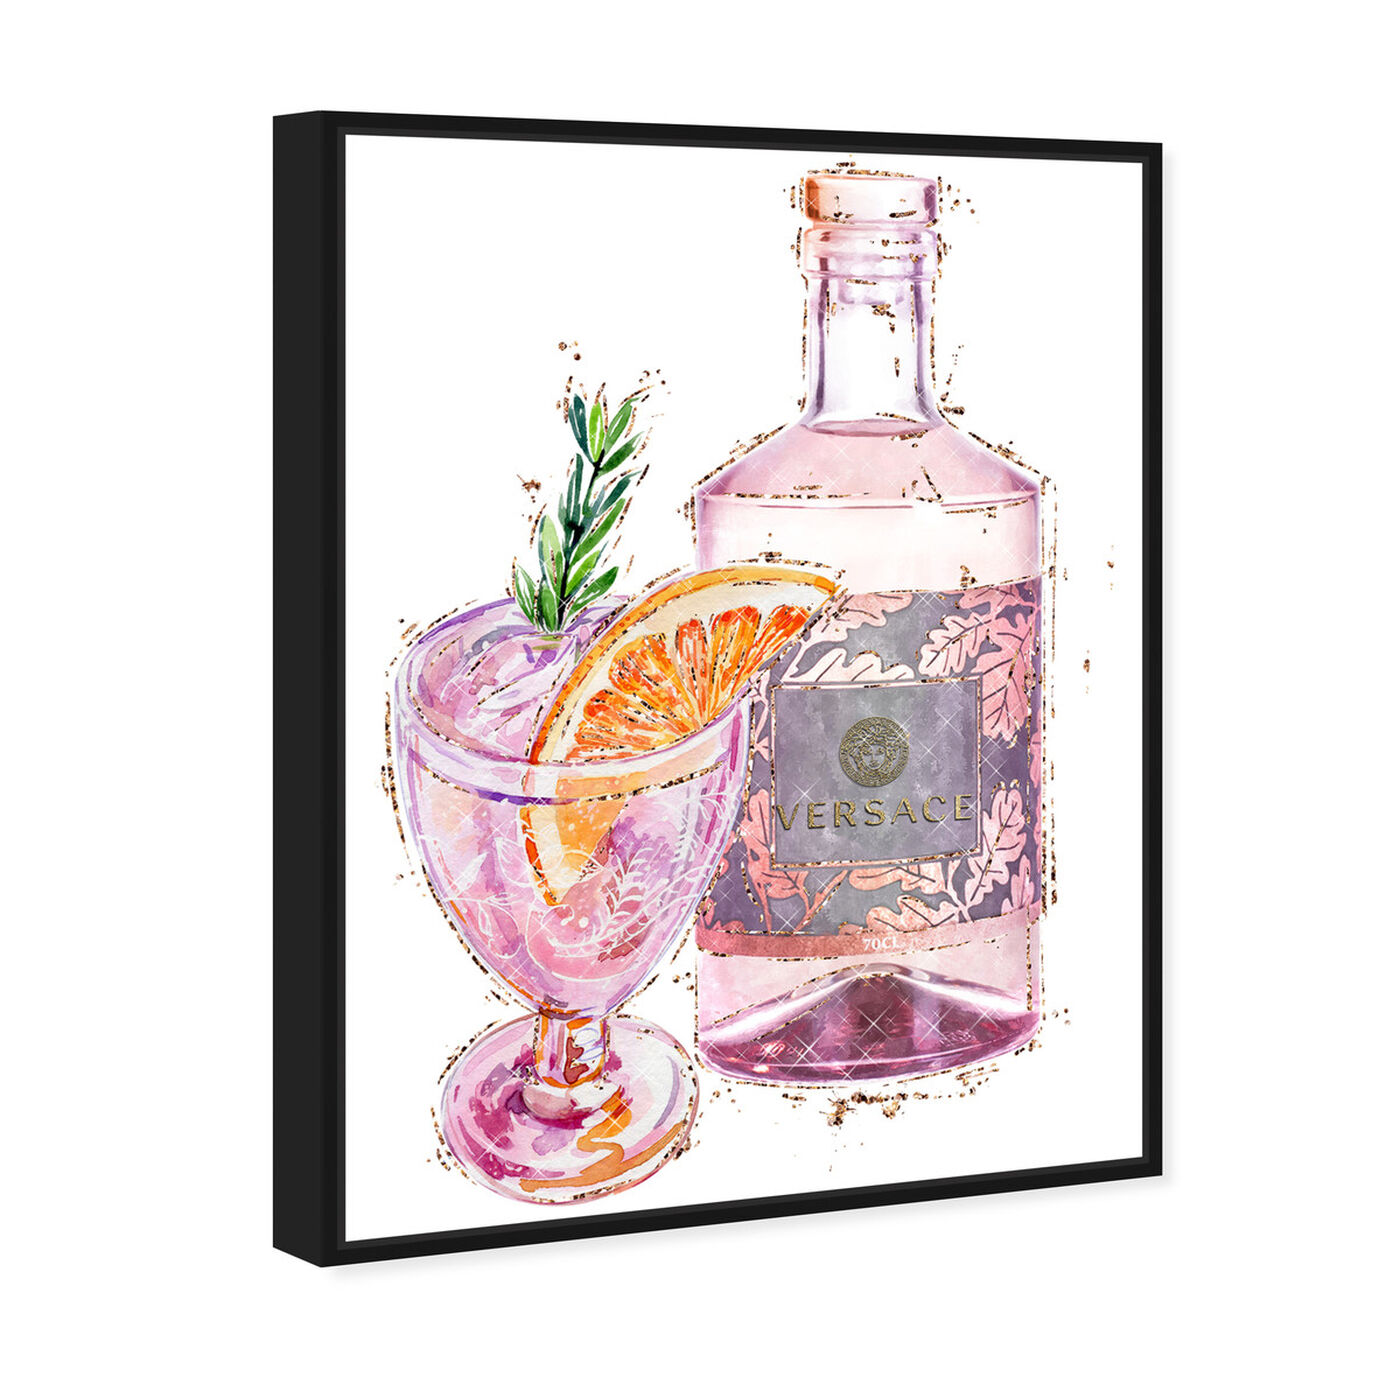 Angled view of Bitters in Italy featuring drinks and spirits and cocktails art.